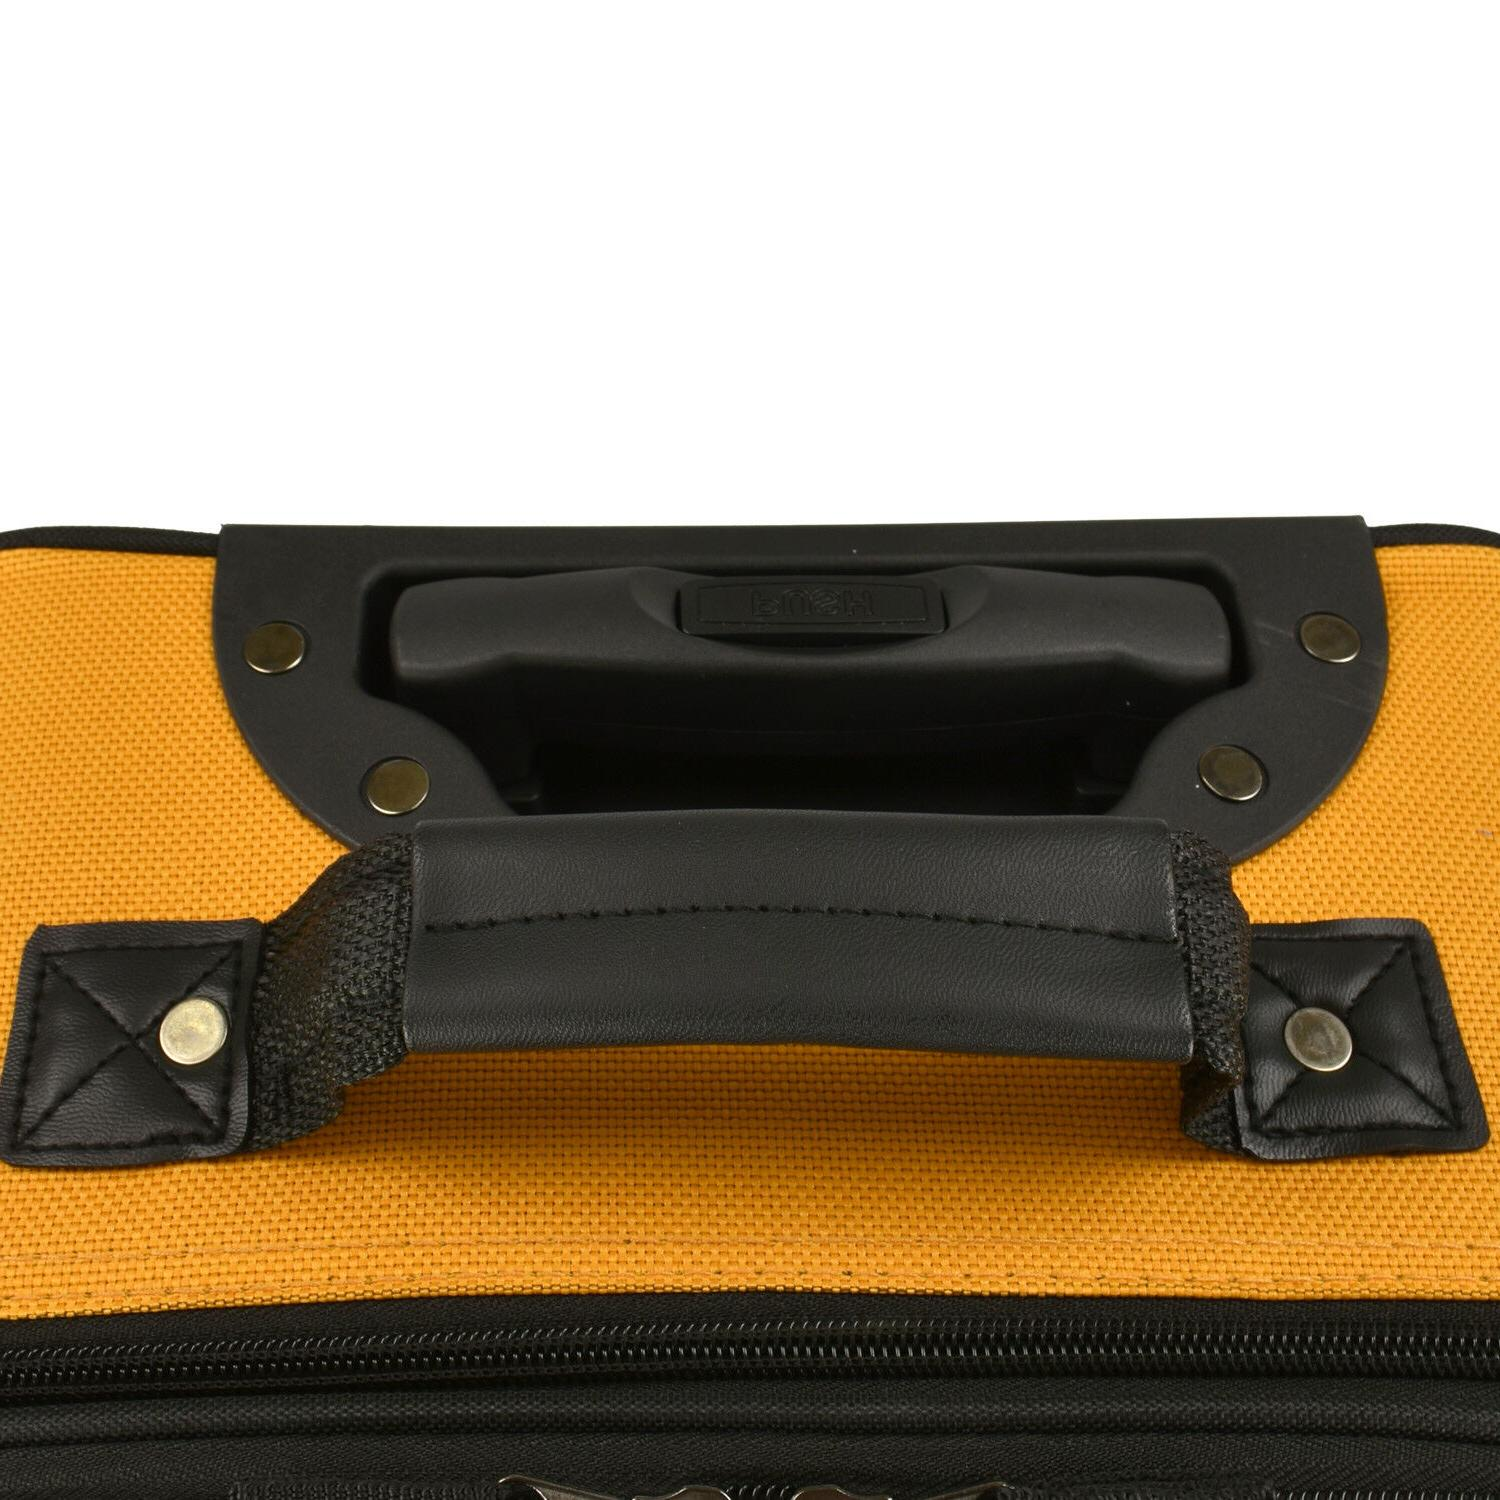 Carry-on Lightweight Bag Luggage